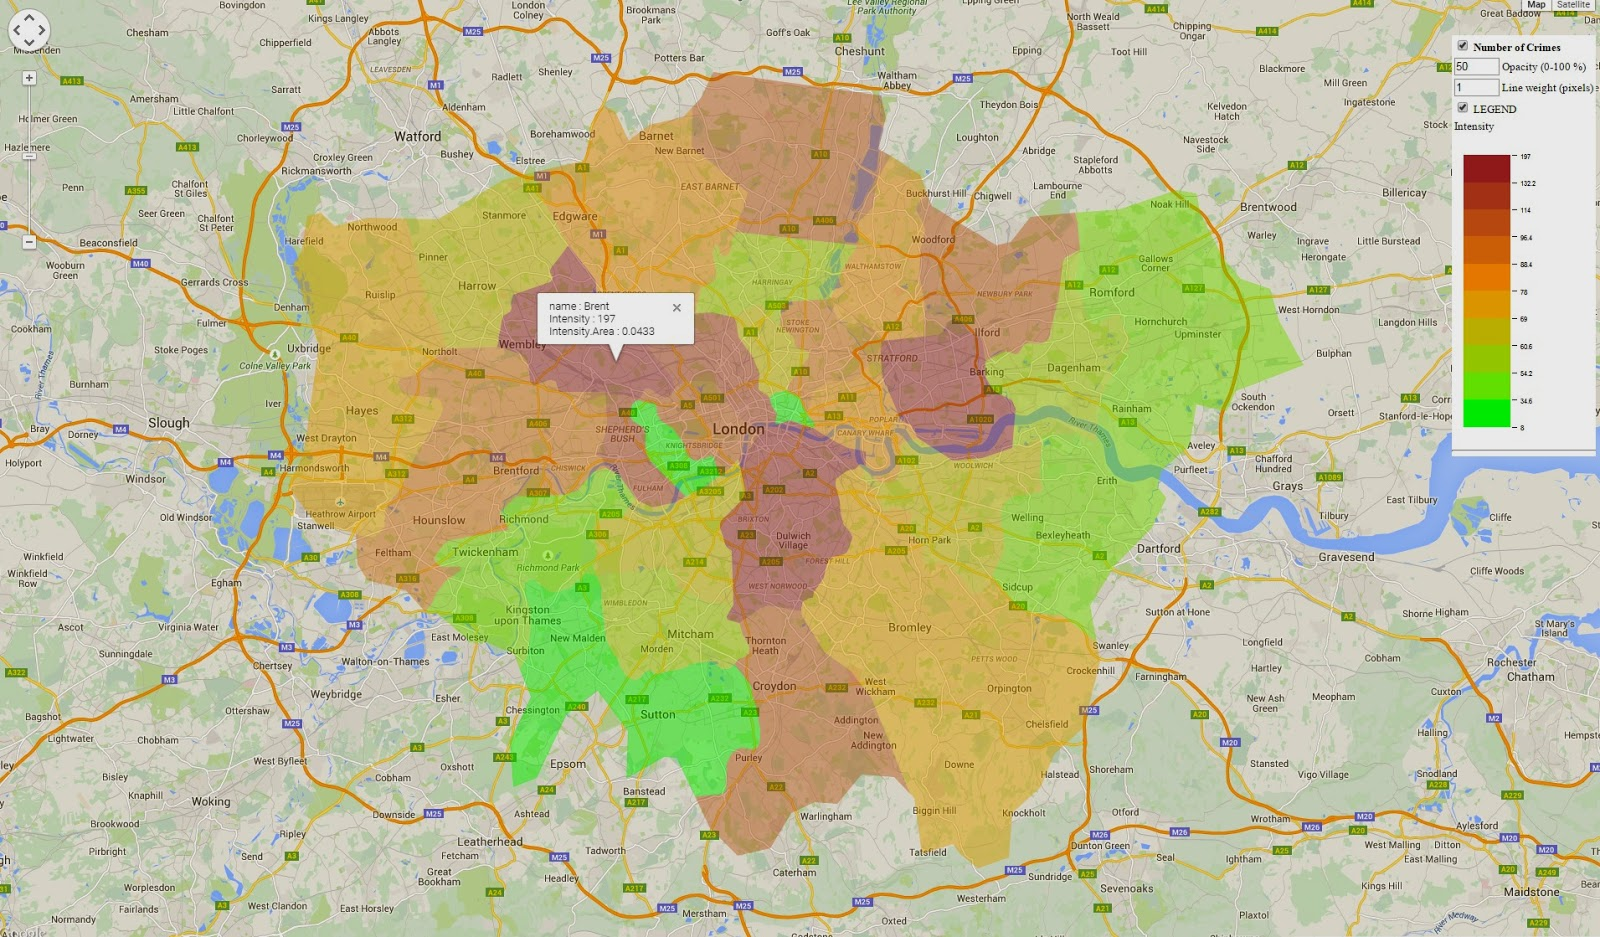 R tutorial for spatial statistics interactive maps of crime data in r tutorial for spatial statistics interactive maps of crime data in greater london gumiabroncs Image collections